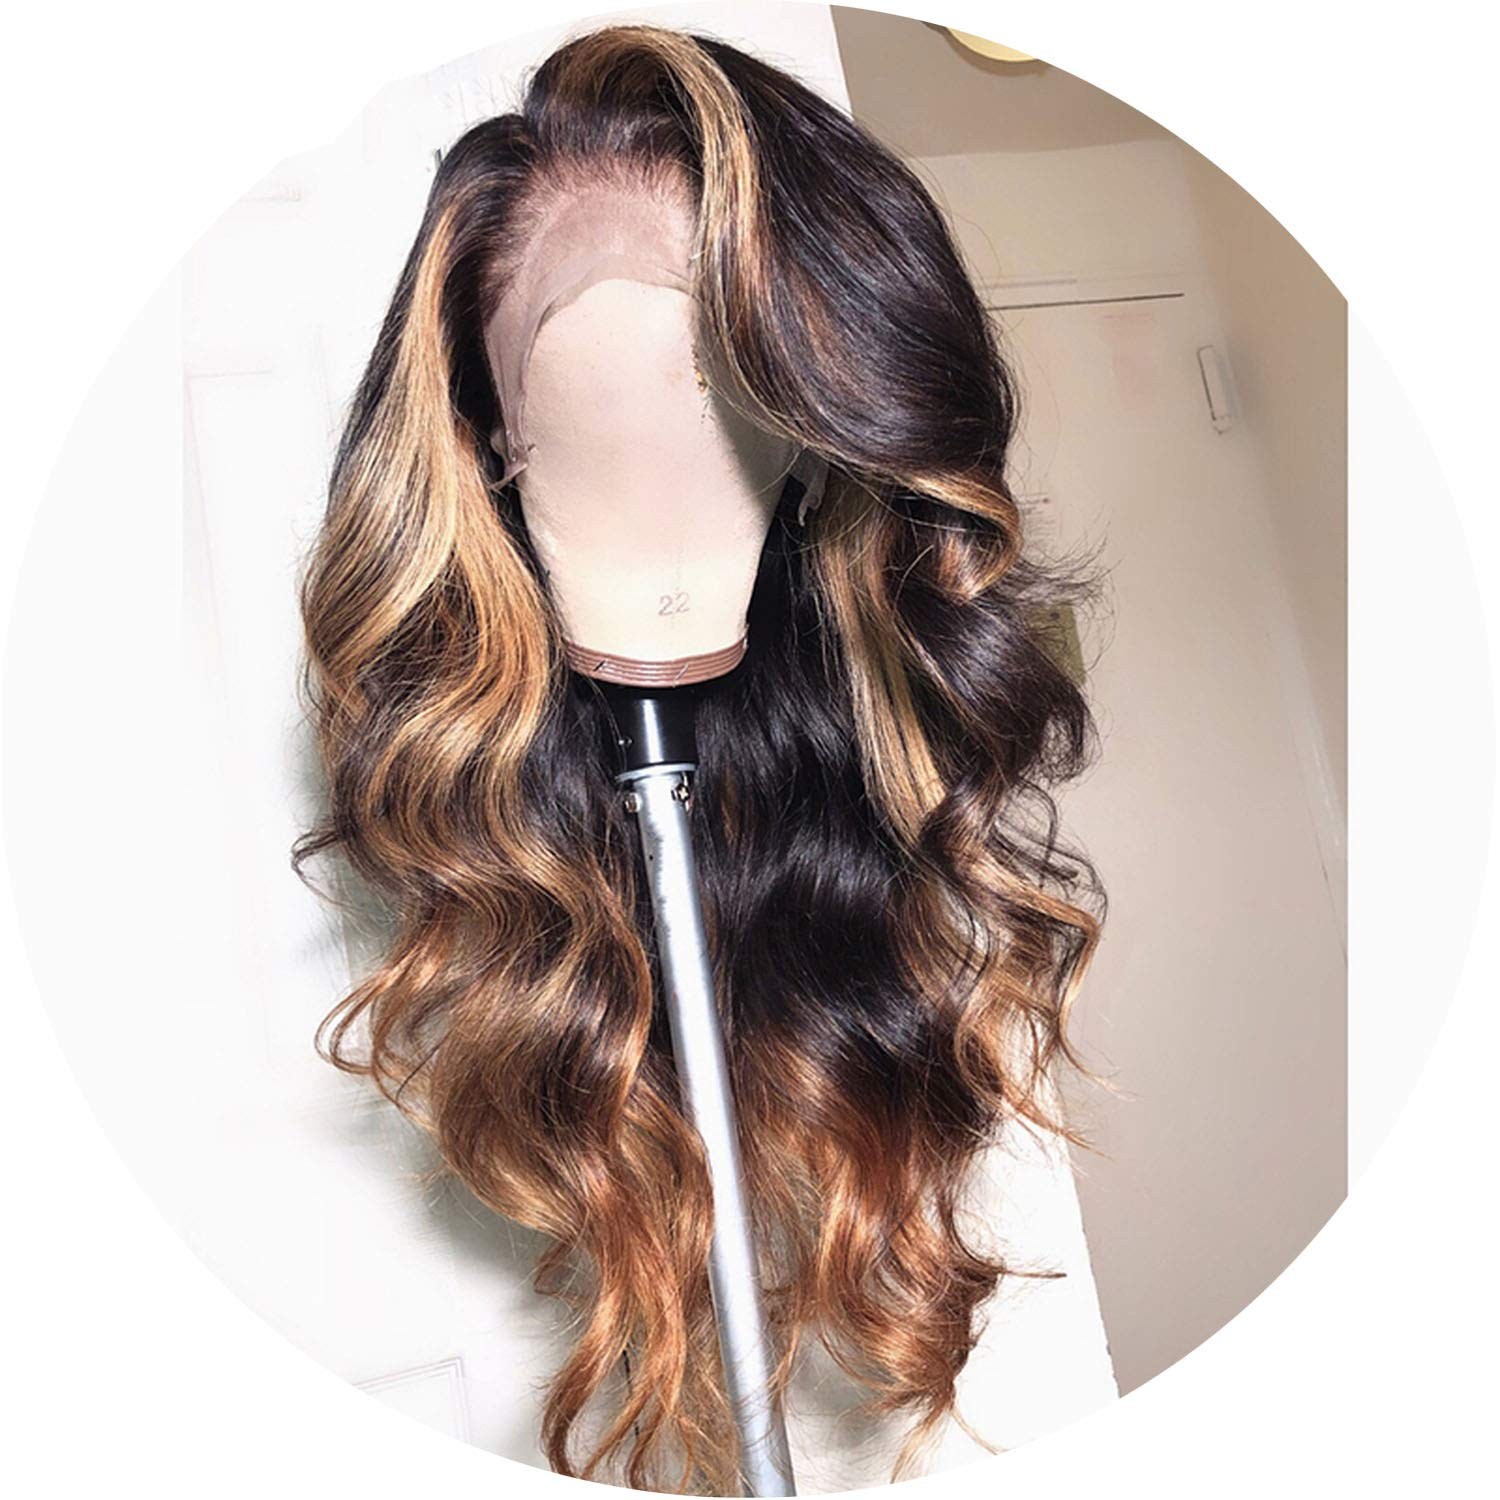 13x6 Deep part Lace Front Human Hair Wigs Body Wave 180% Density Brazilian Remy Human Hair Pre-Plucked Hairline Peony red,12inches,150%,13x3 lace front wig